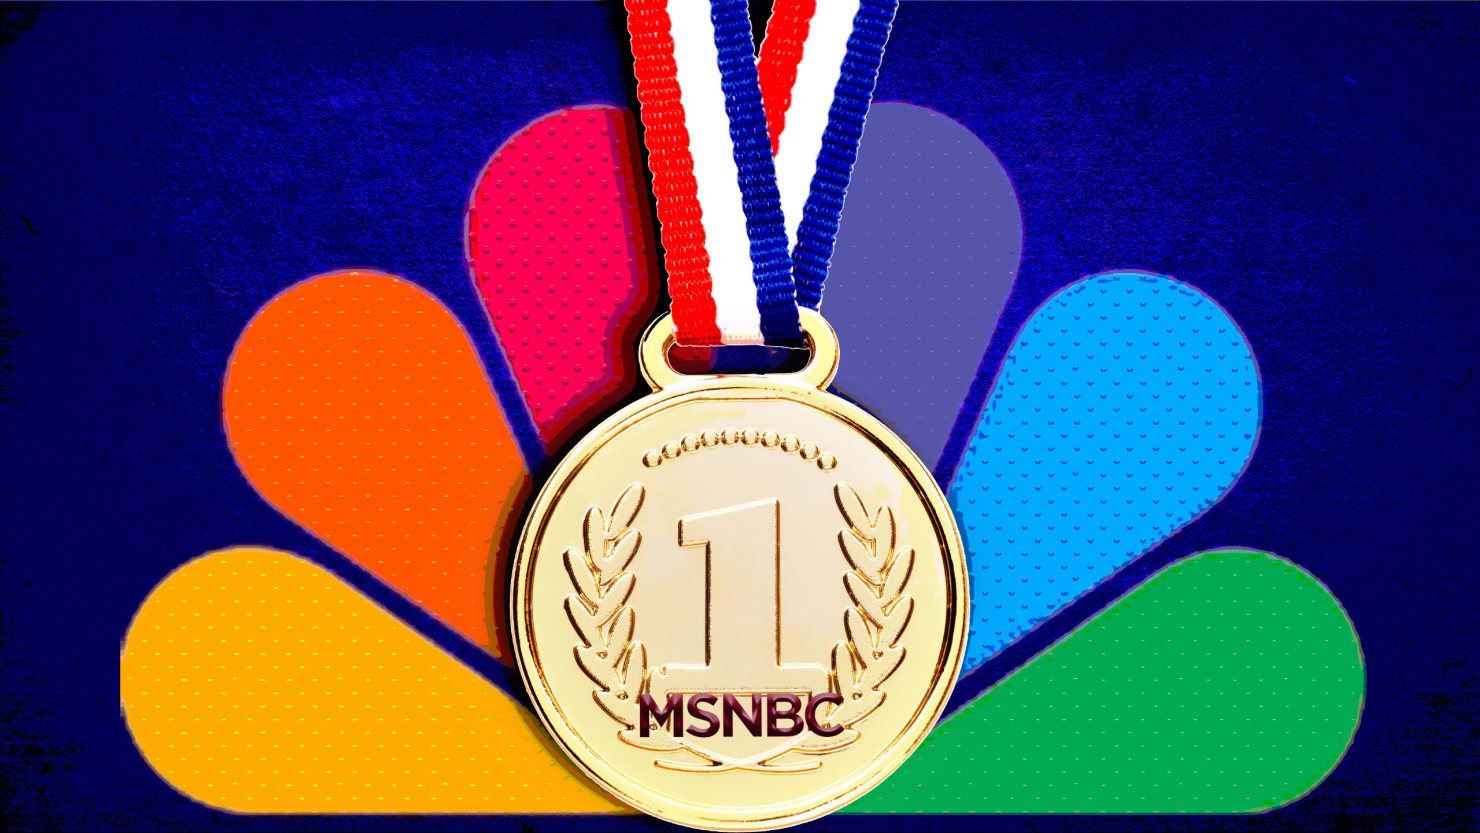 msnbc beats fox news in weekly cable news ratings for first time